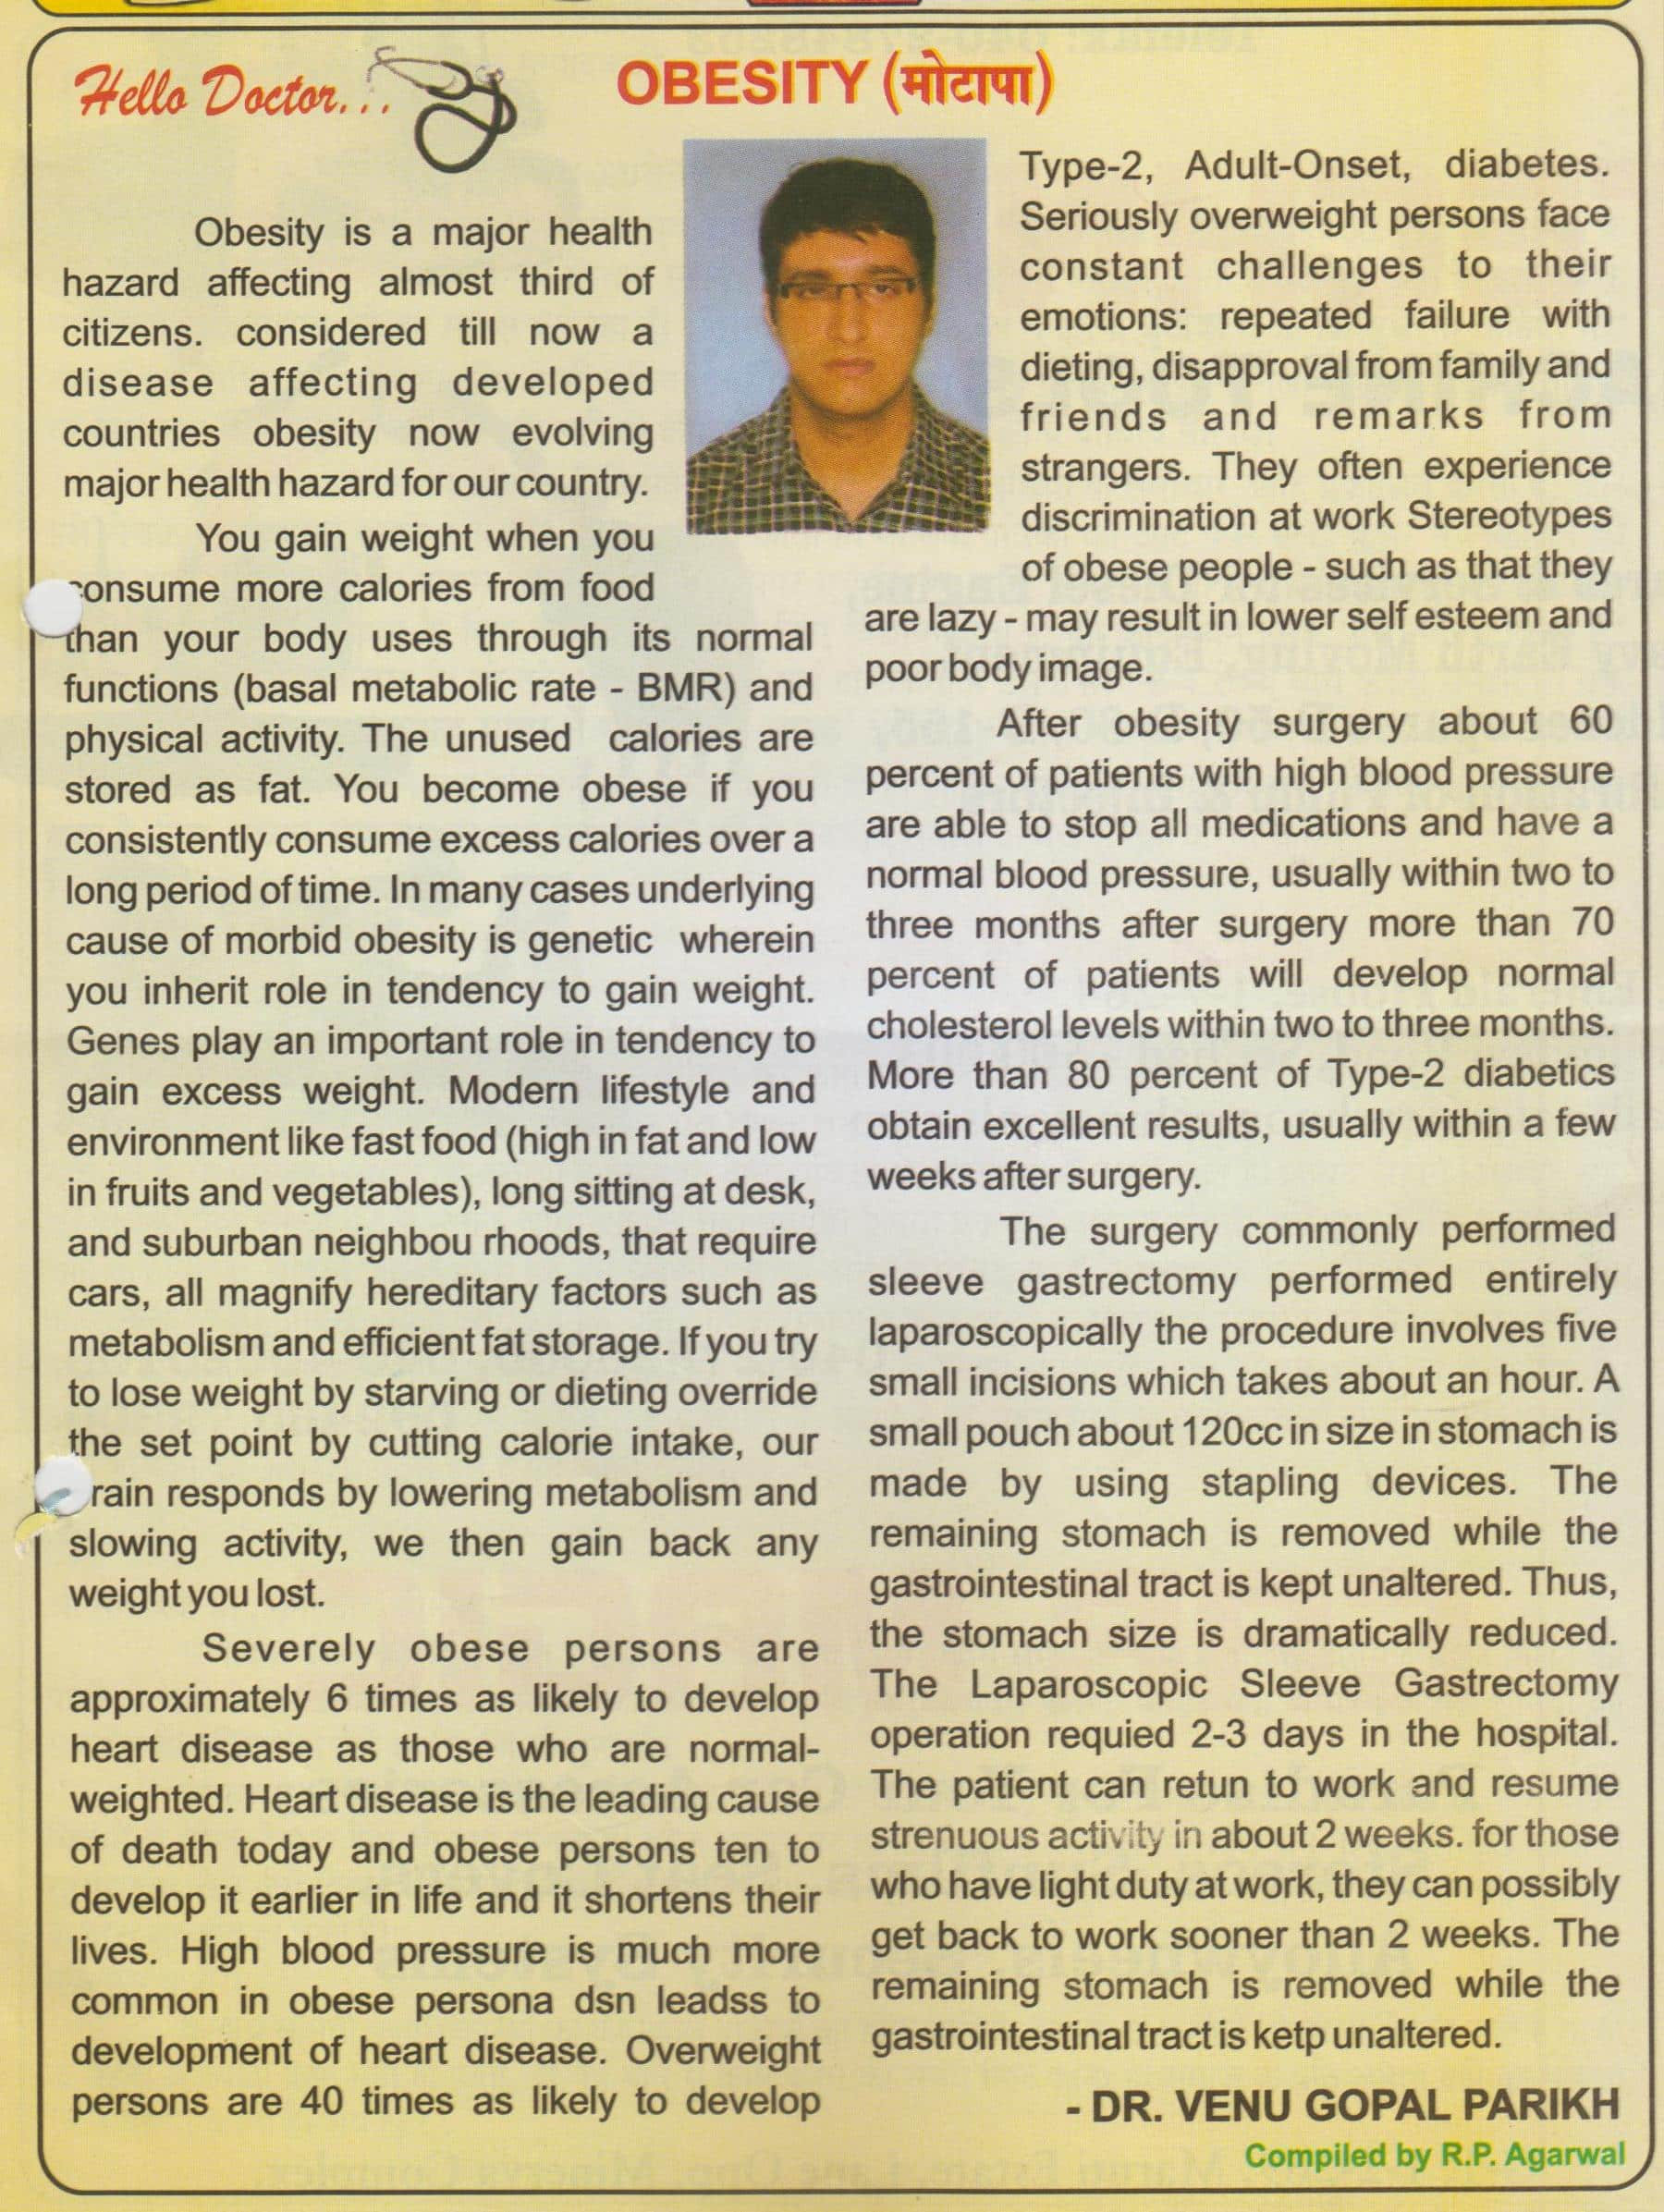 Read this bariatric aritcle to weight-loss with Obesity surgery